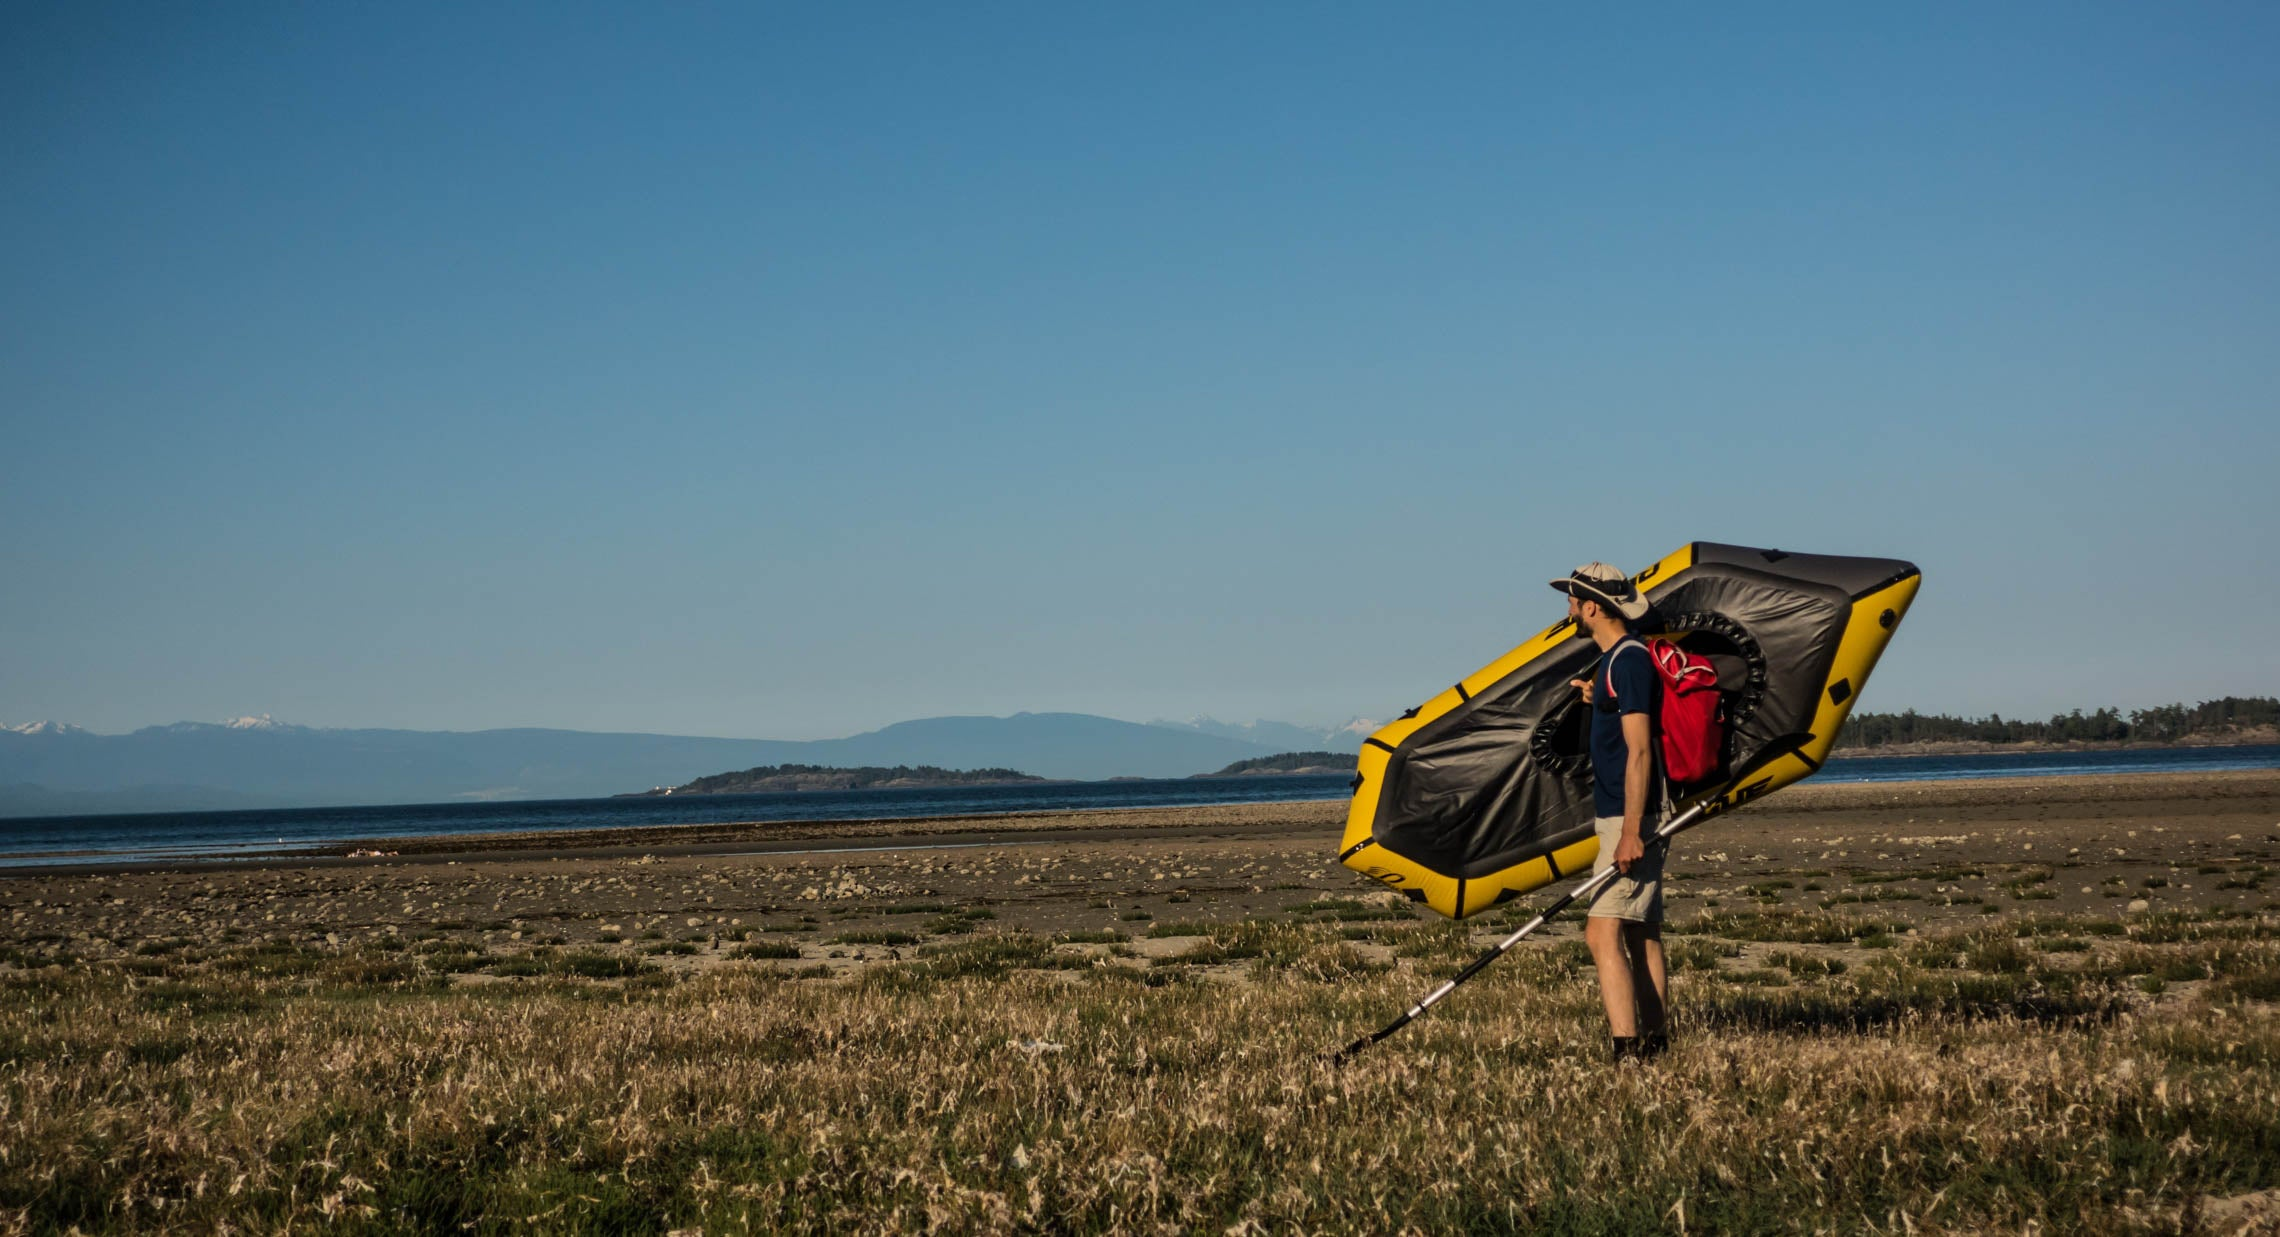 Packrafting is fun without the hassle. Why Packraft Kokopelli